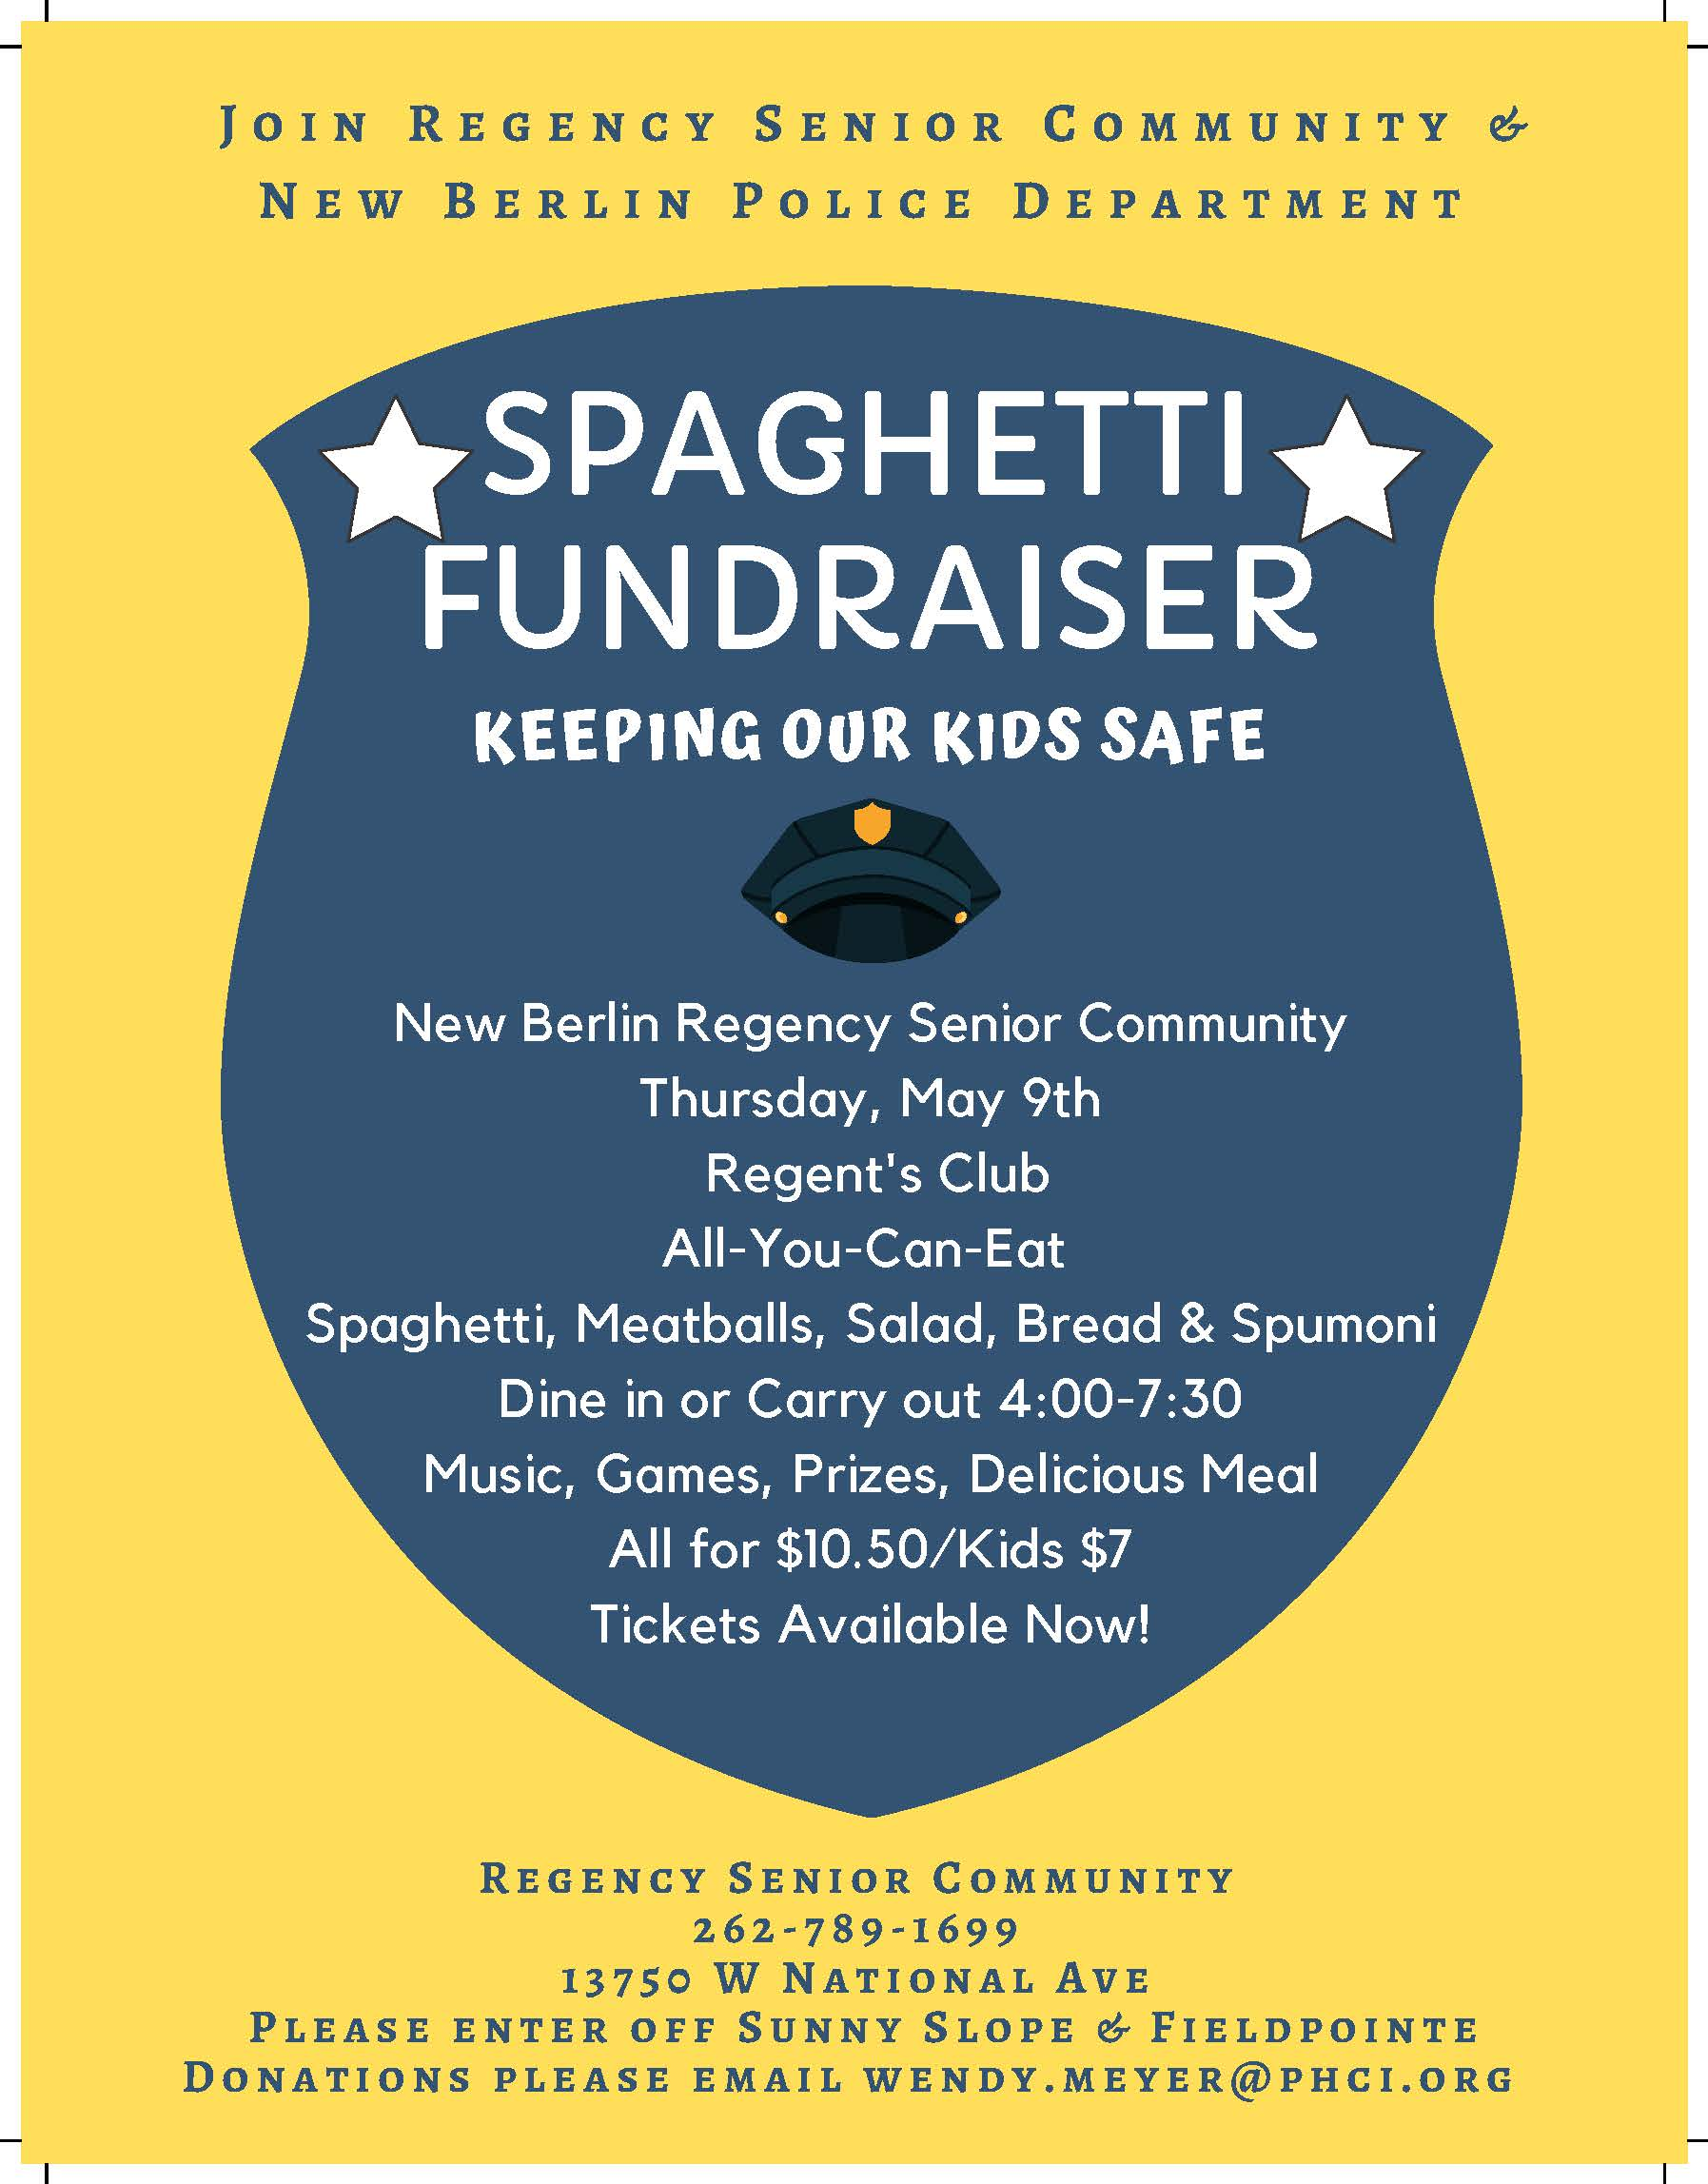 Regency Fundraiser Flyer for New Berlin Police Dept. (2)